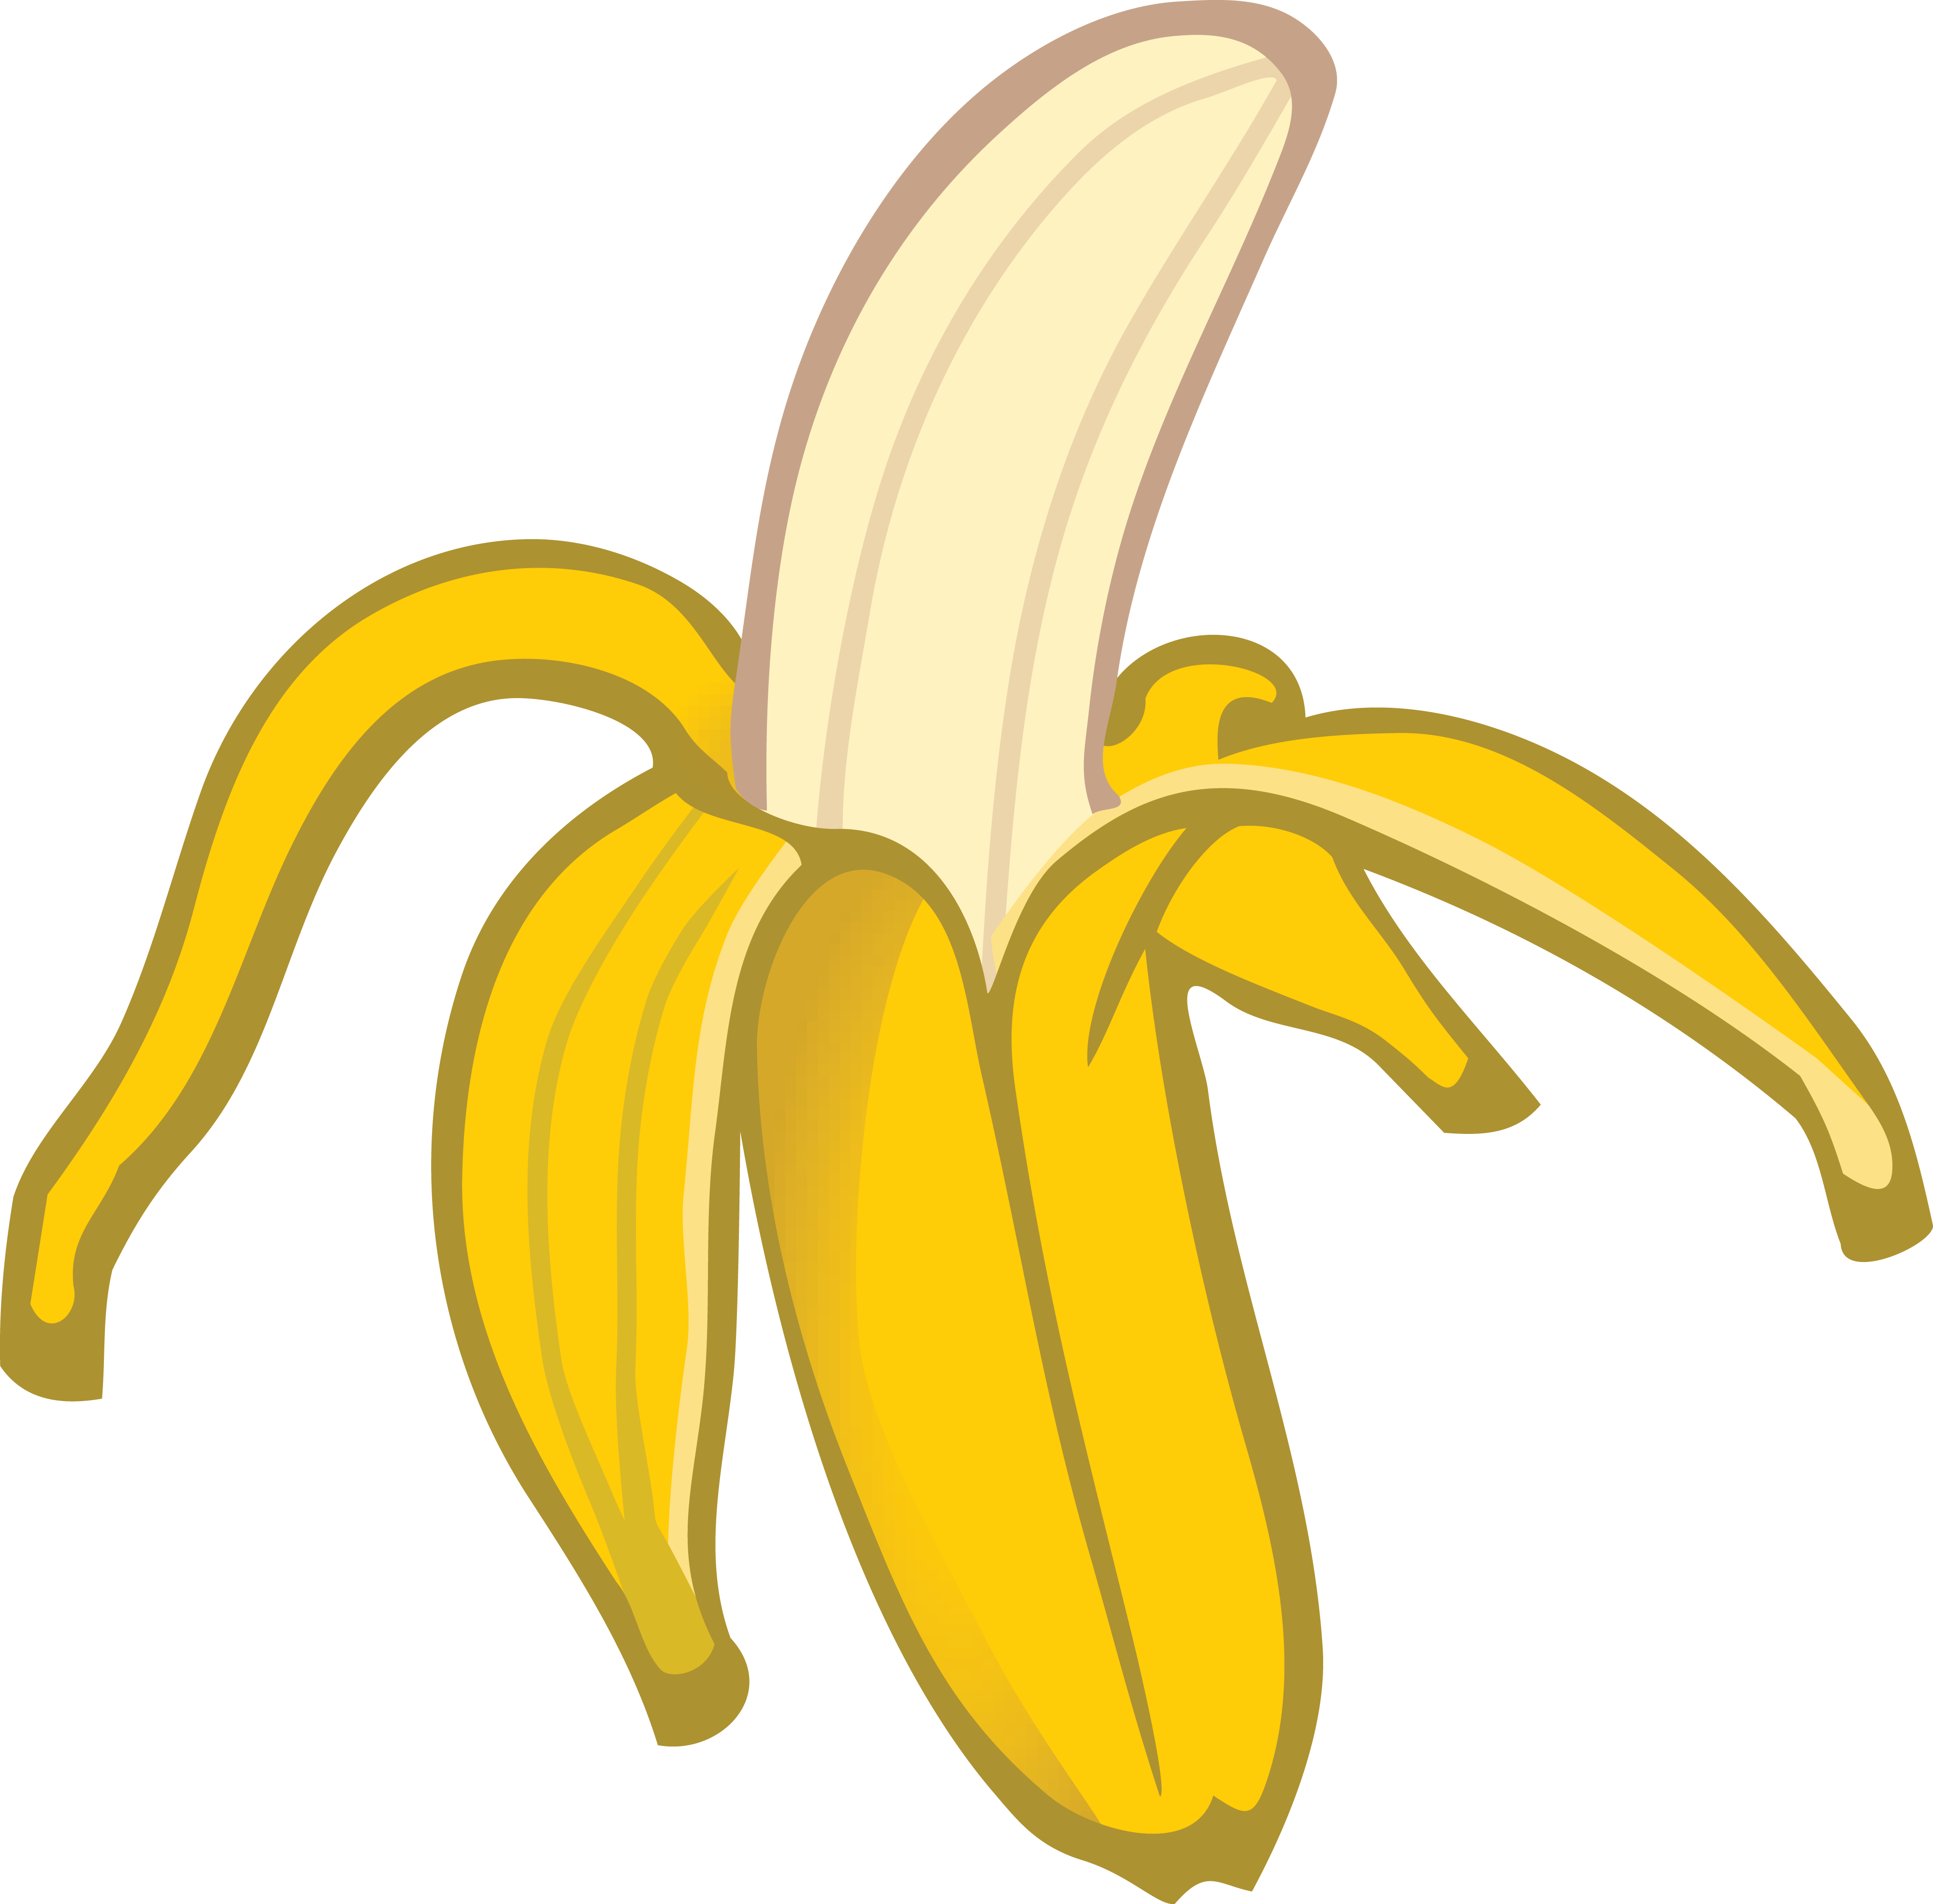 4000x3941 Free Clipart Of A Banana